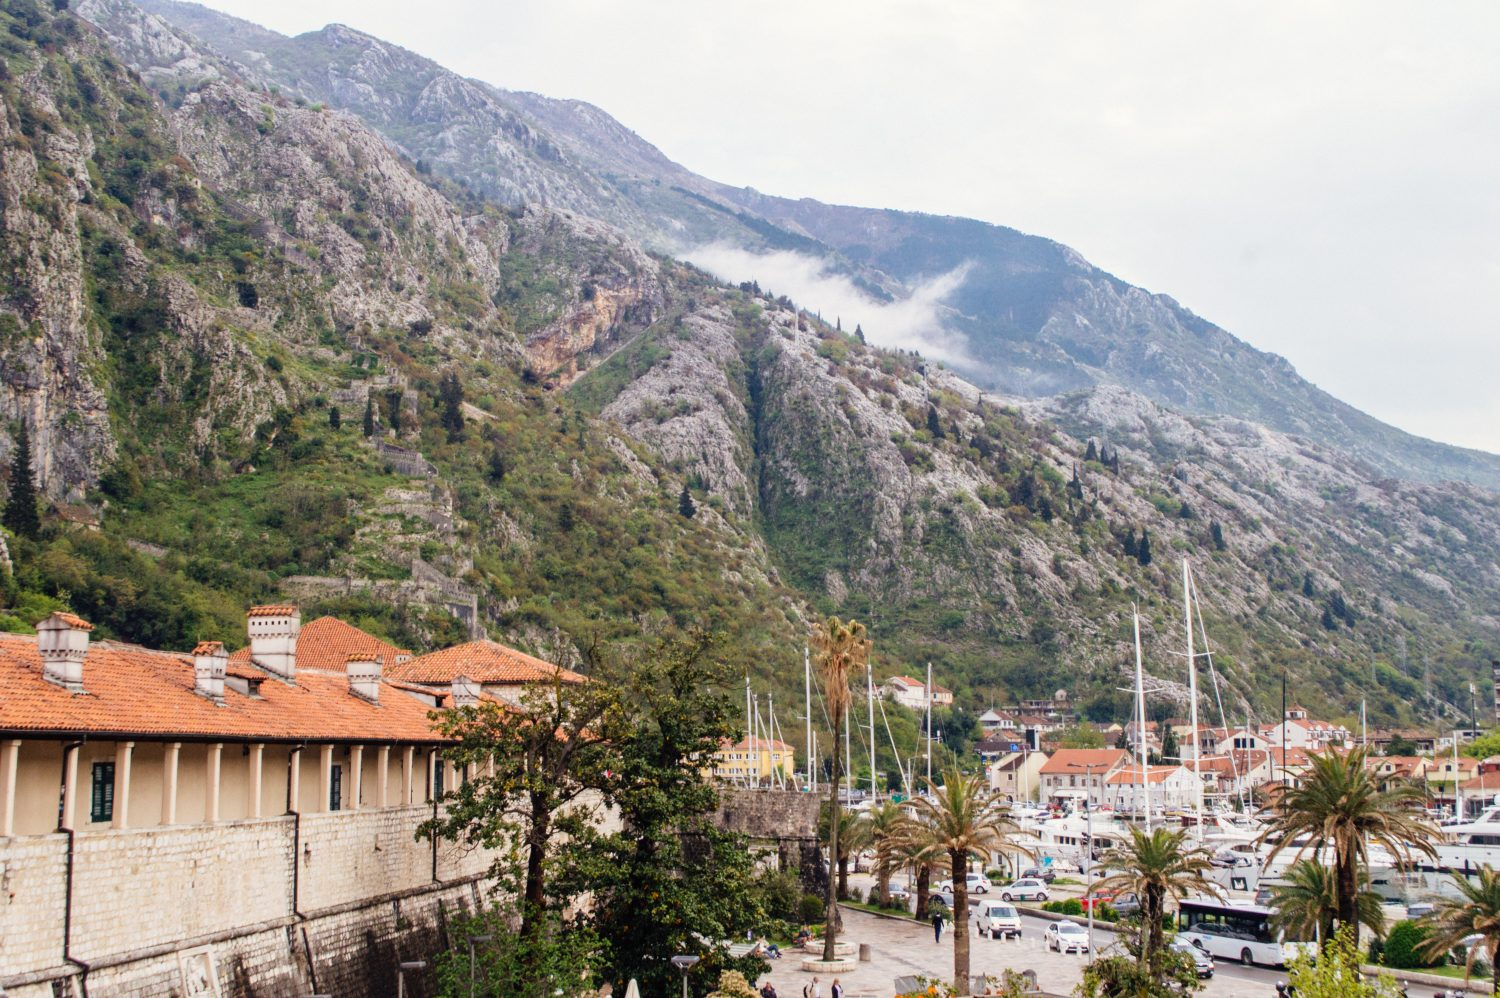 Looking for things to see and what to do in Kotor, Montenegro? Check out these gorgeous photos of Kotor for inspiration!